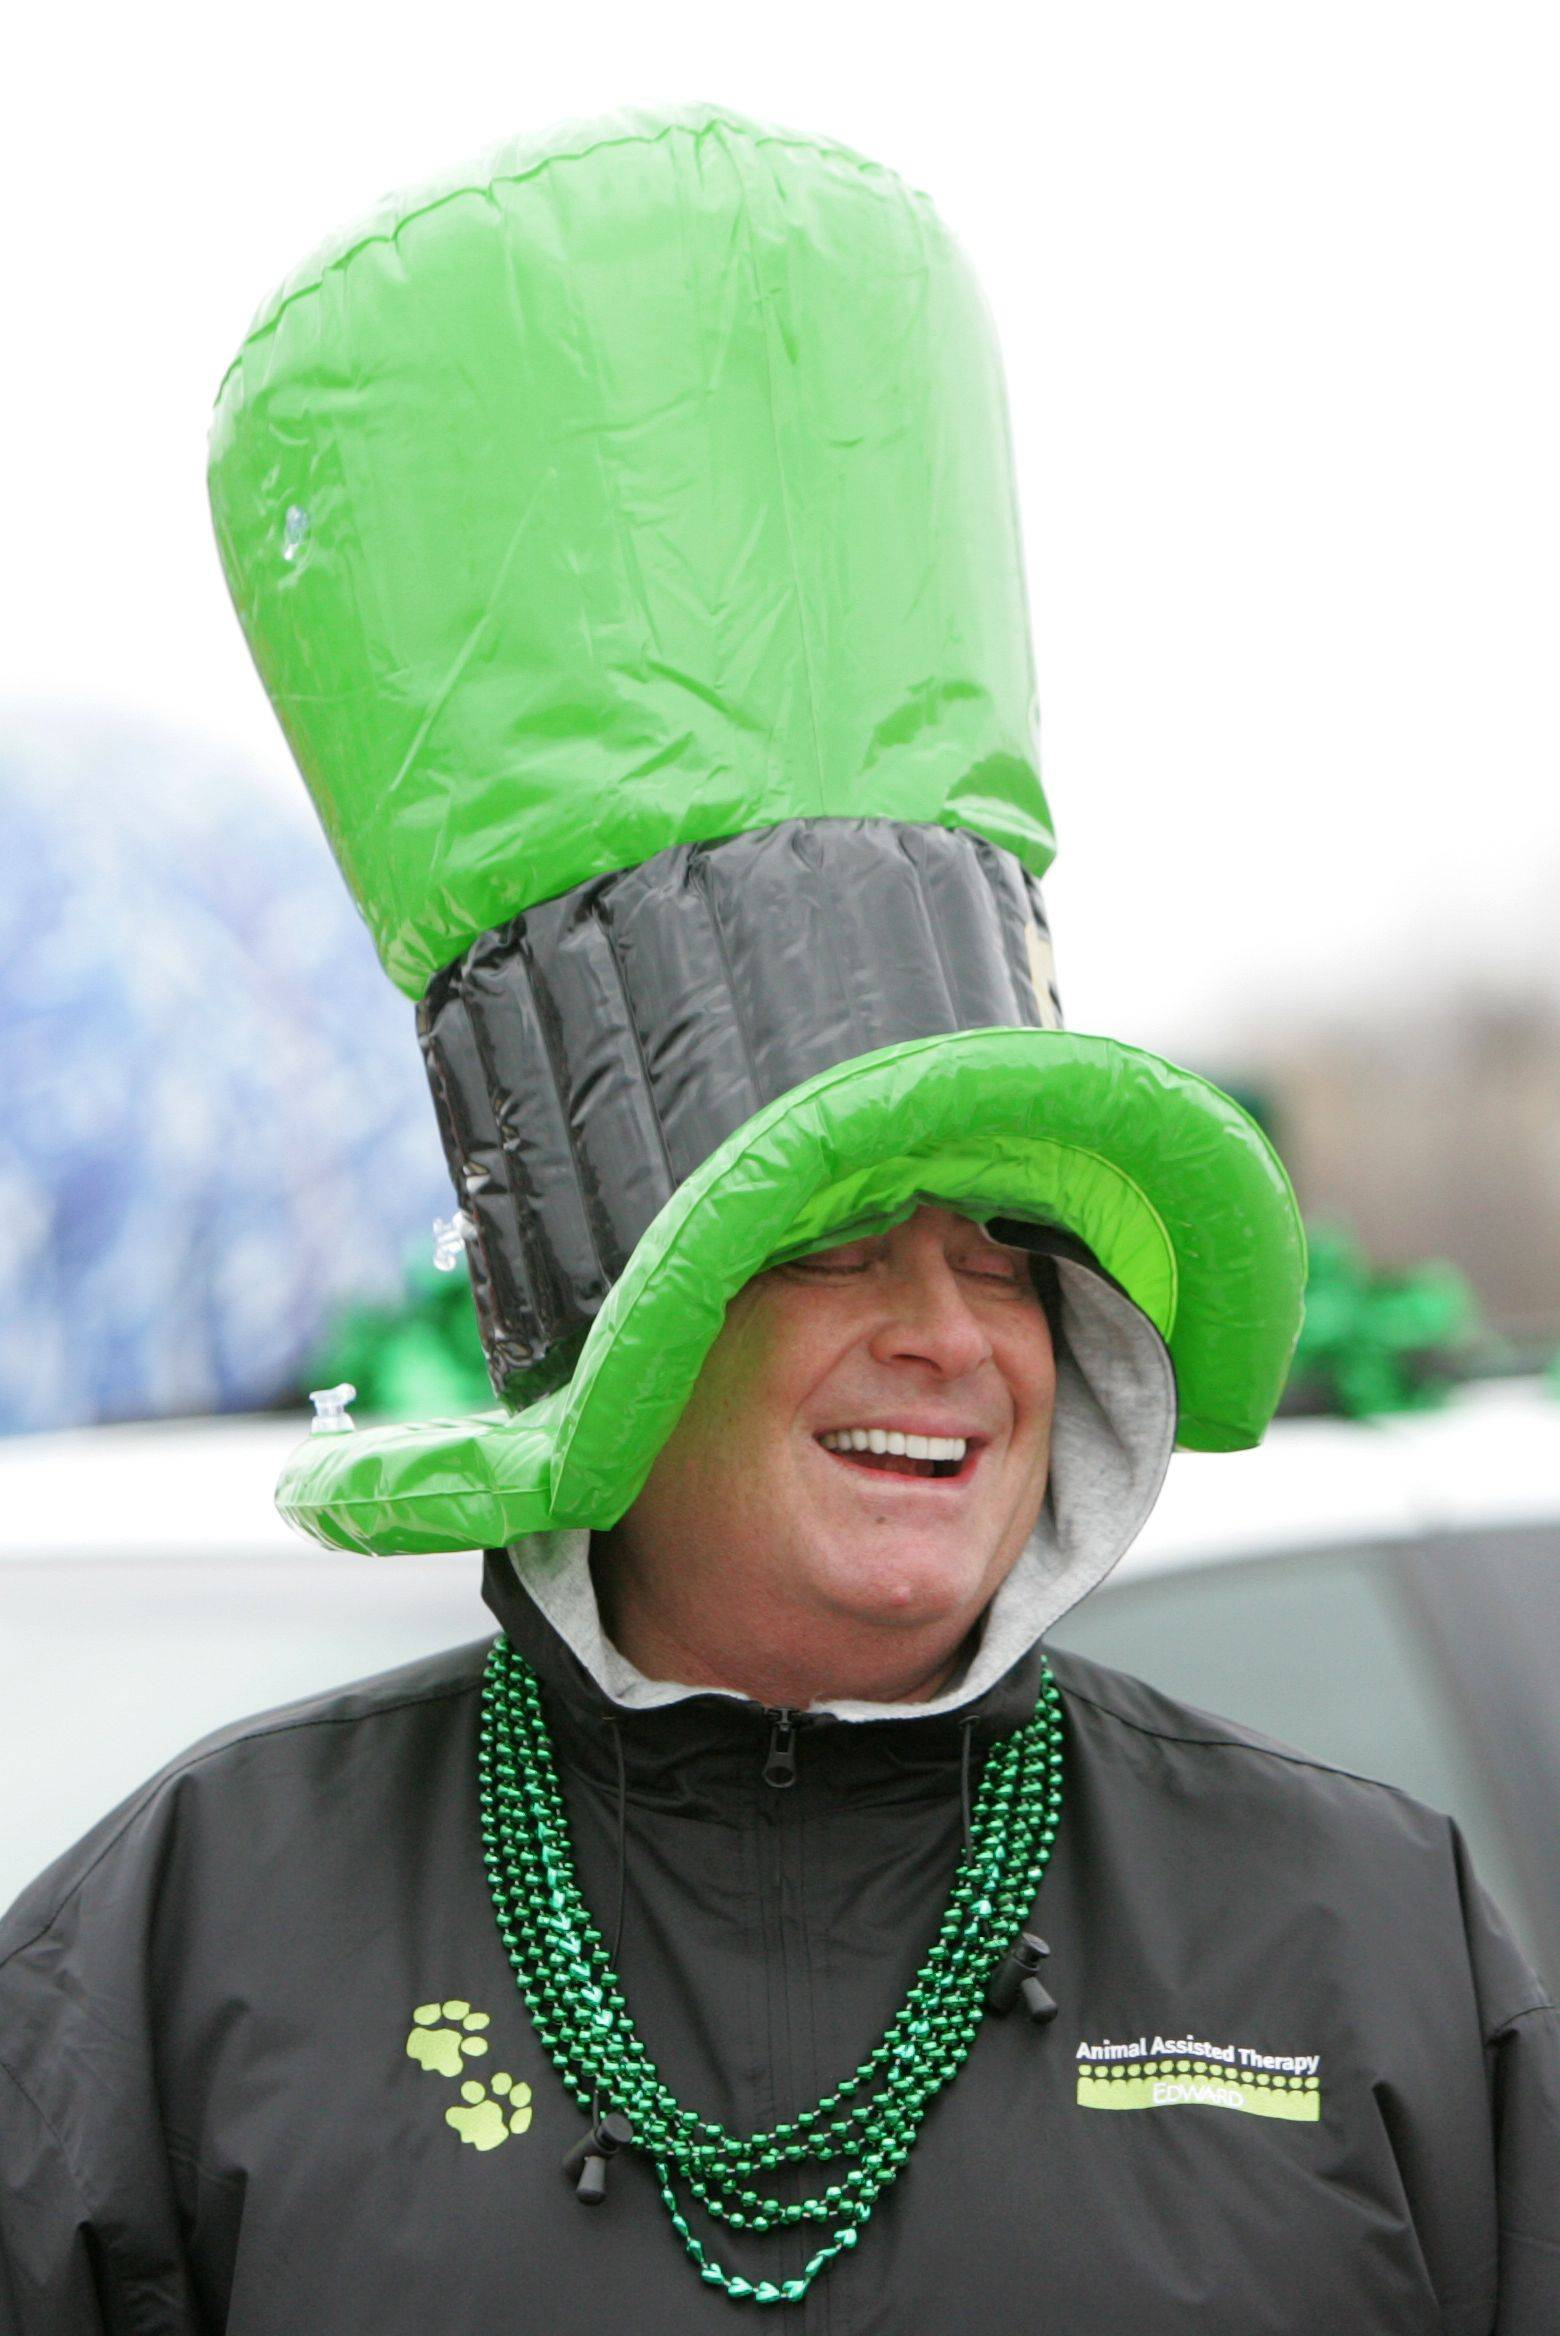 Scott Miller of Burr Ridge participates in the annual St. Patrick's Day Parade in downtown Naperville.